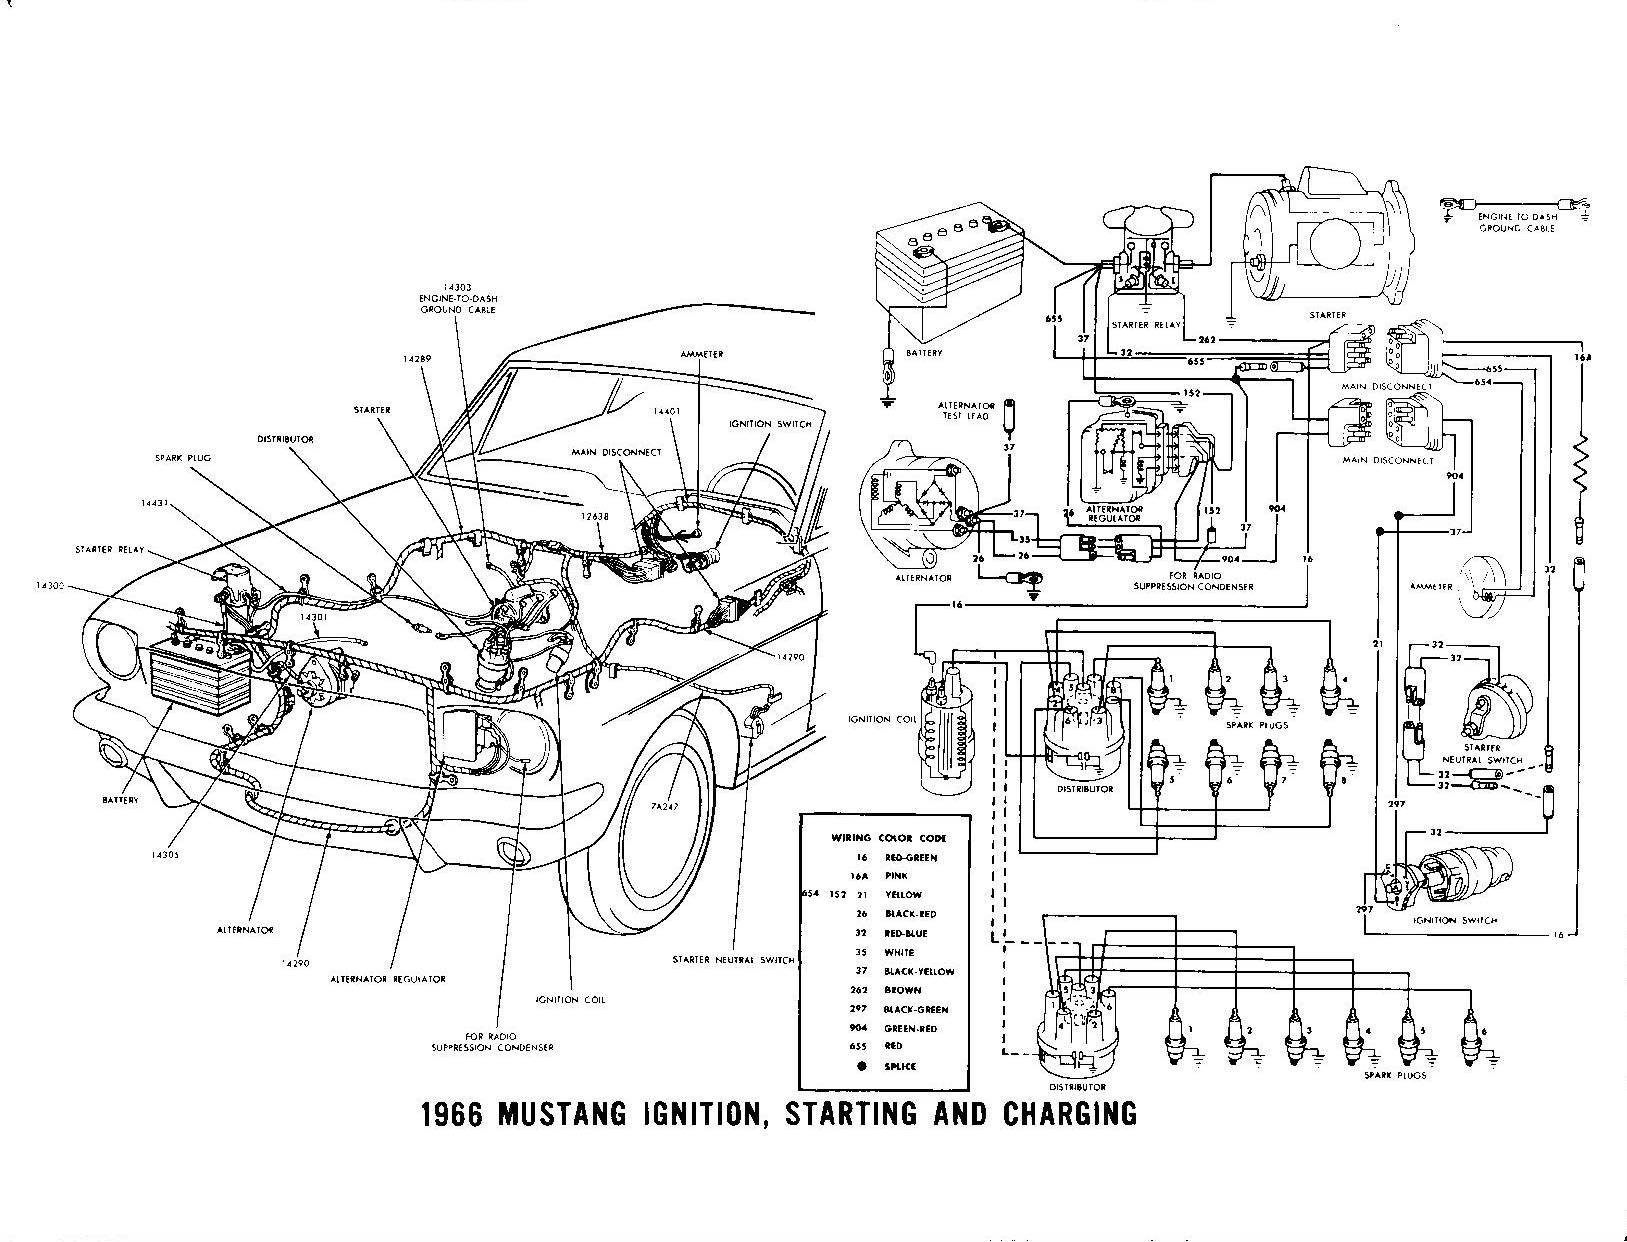 84158d1259007545 1966 alternator not charging ignition starting charging 1966 alternator not charging ford mustang forum 1969 mustang voltage regulator wiring diagram at mifinder.co